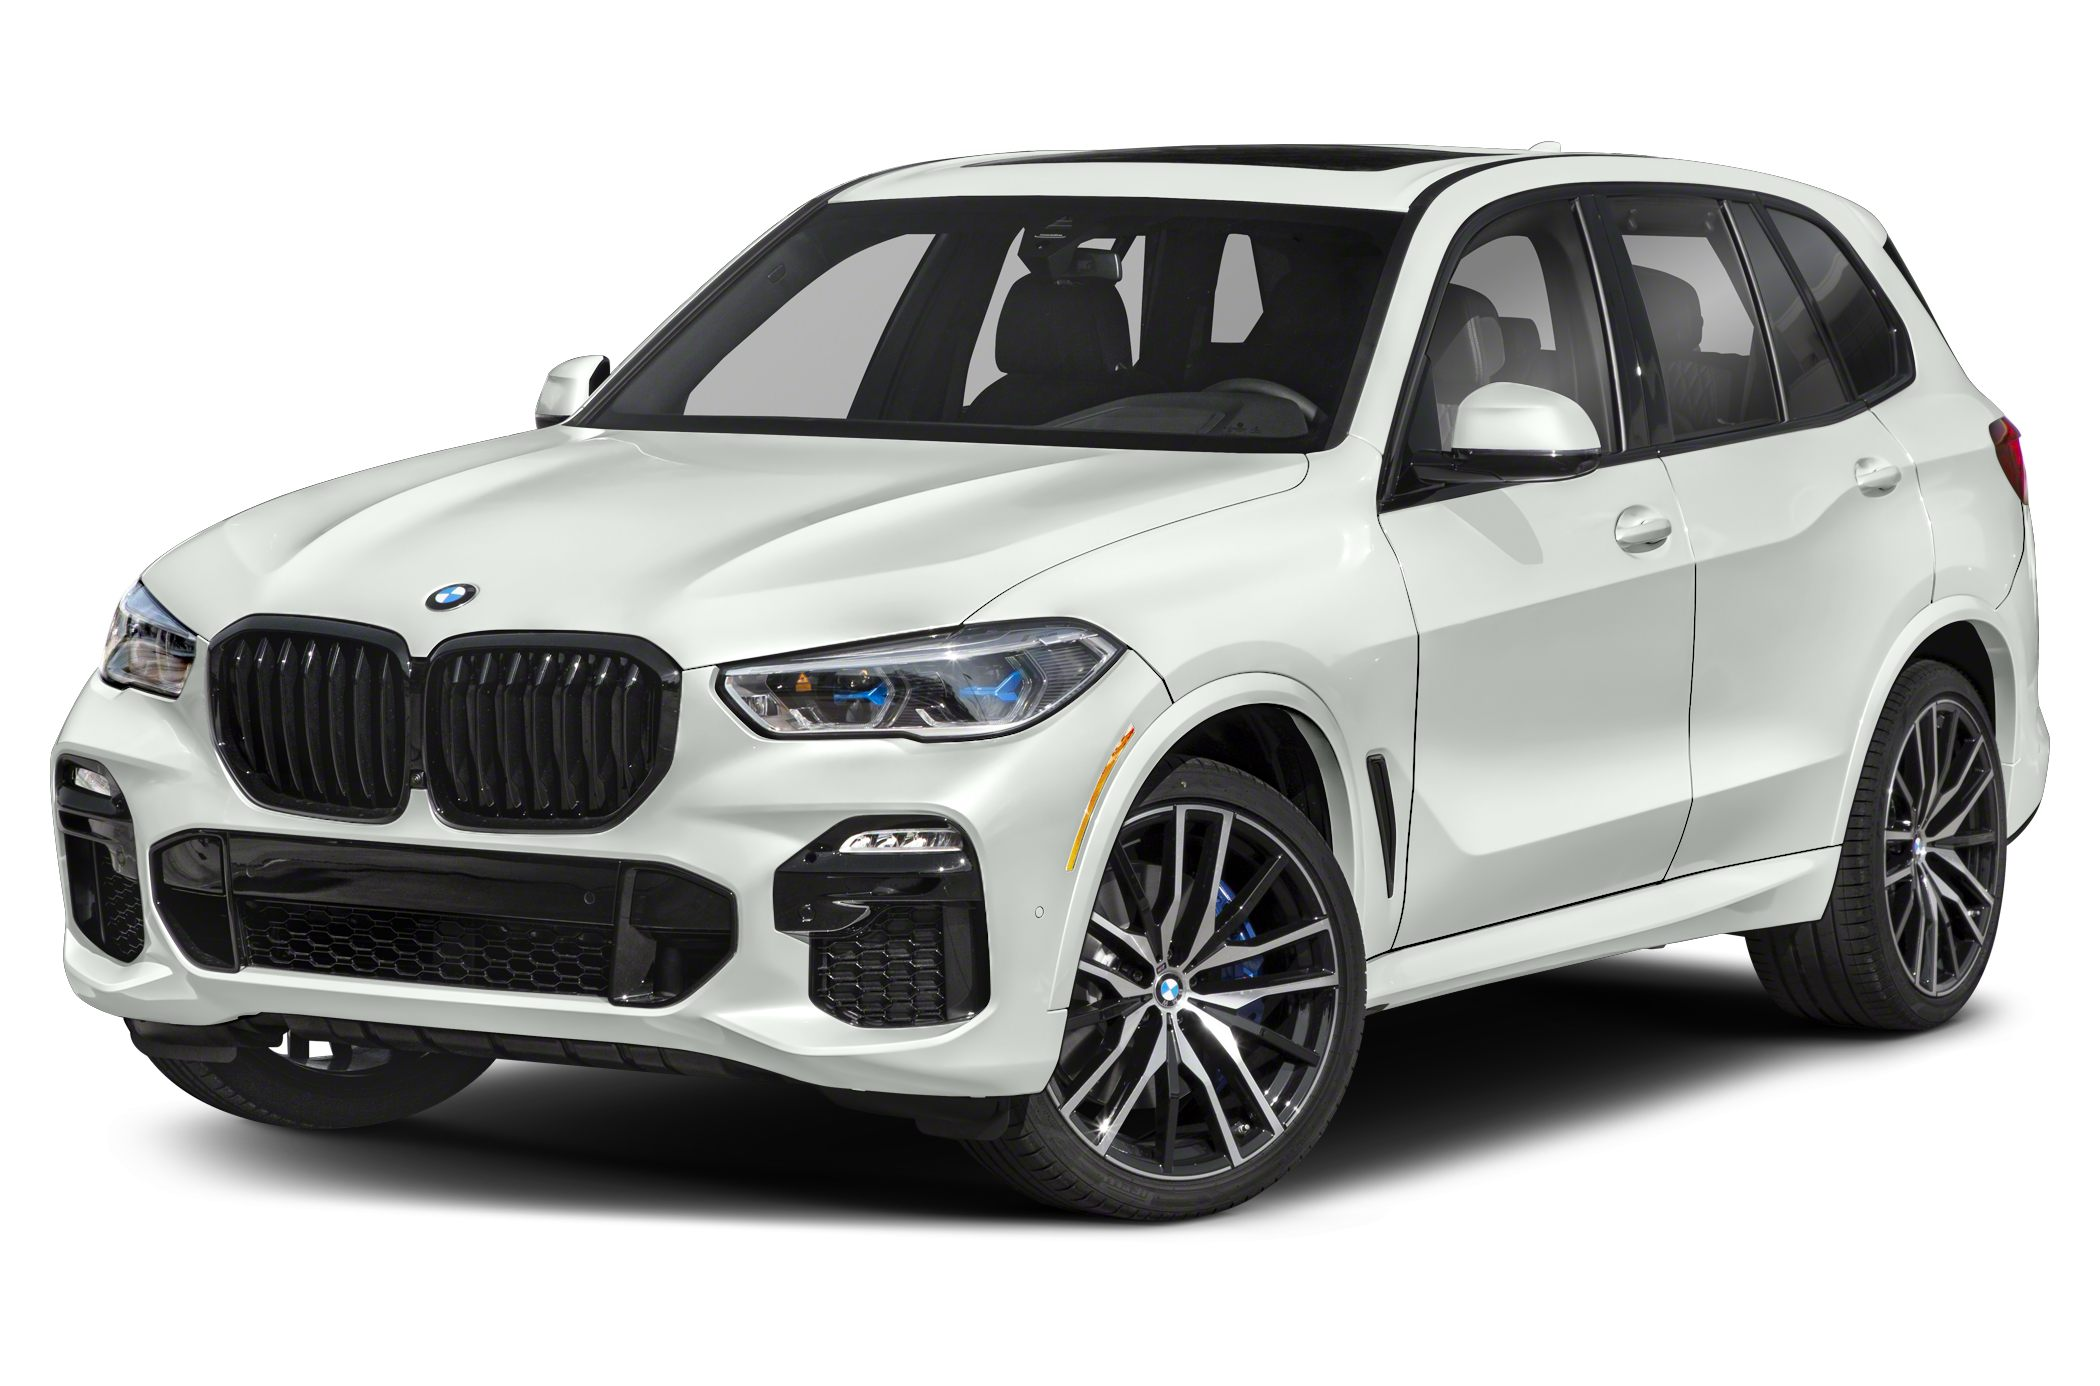 2020 Bmw X5 M50i 4dr All Wheel Drive Sports Activity Vehicle Pricing And Options